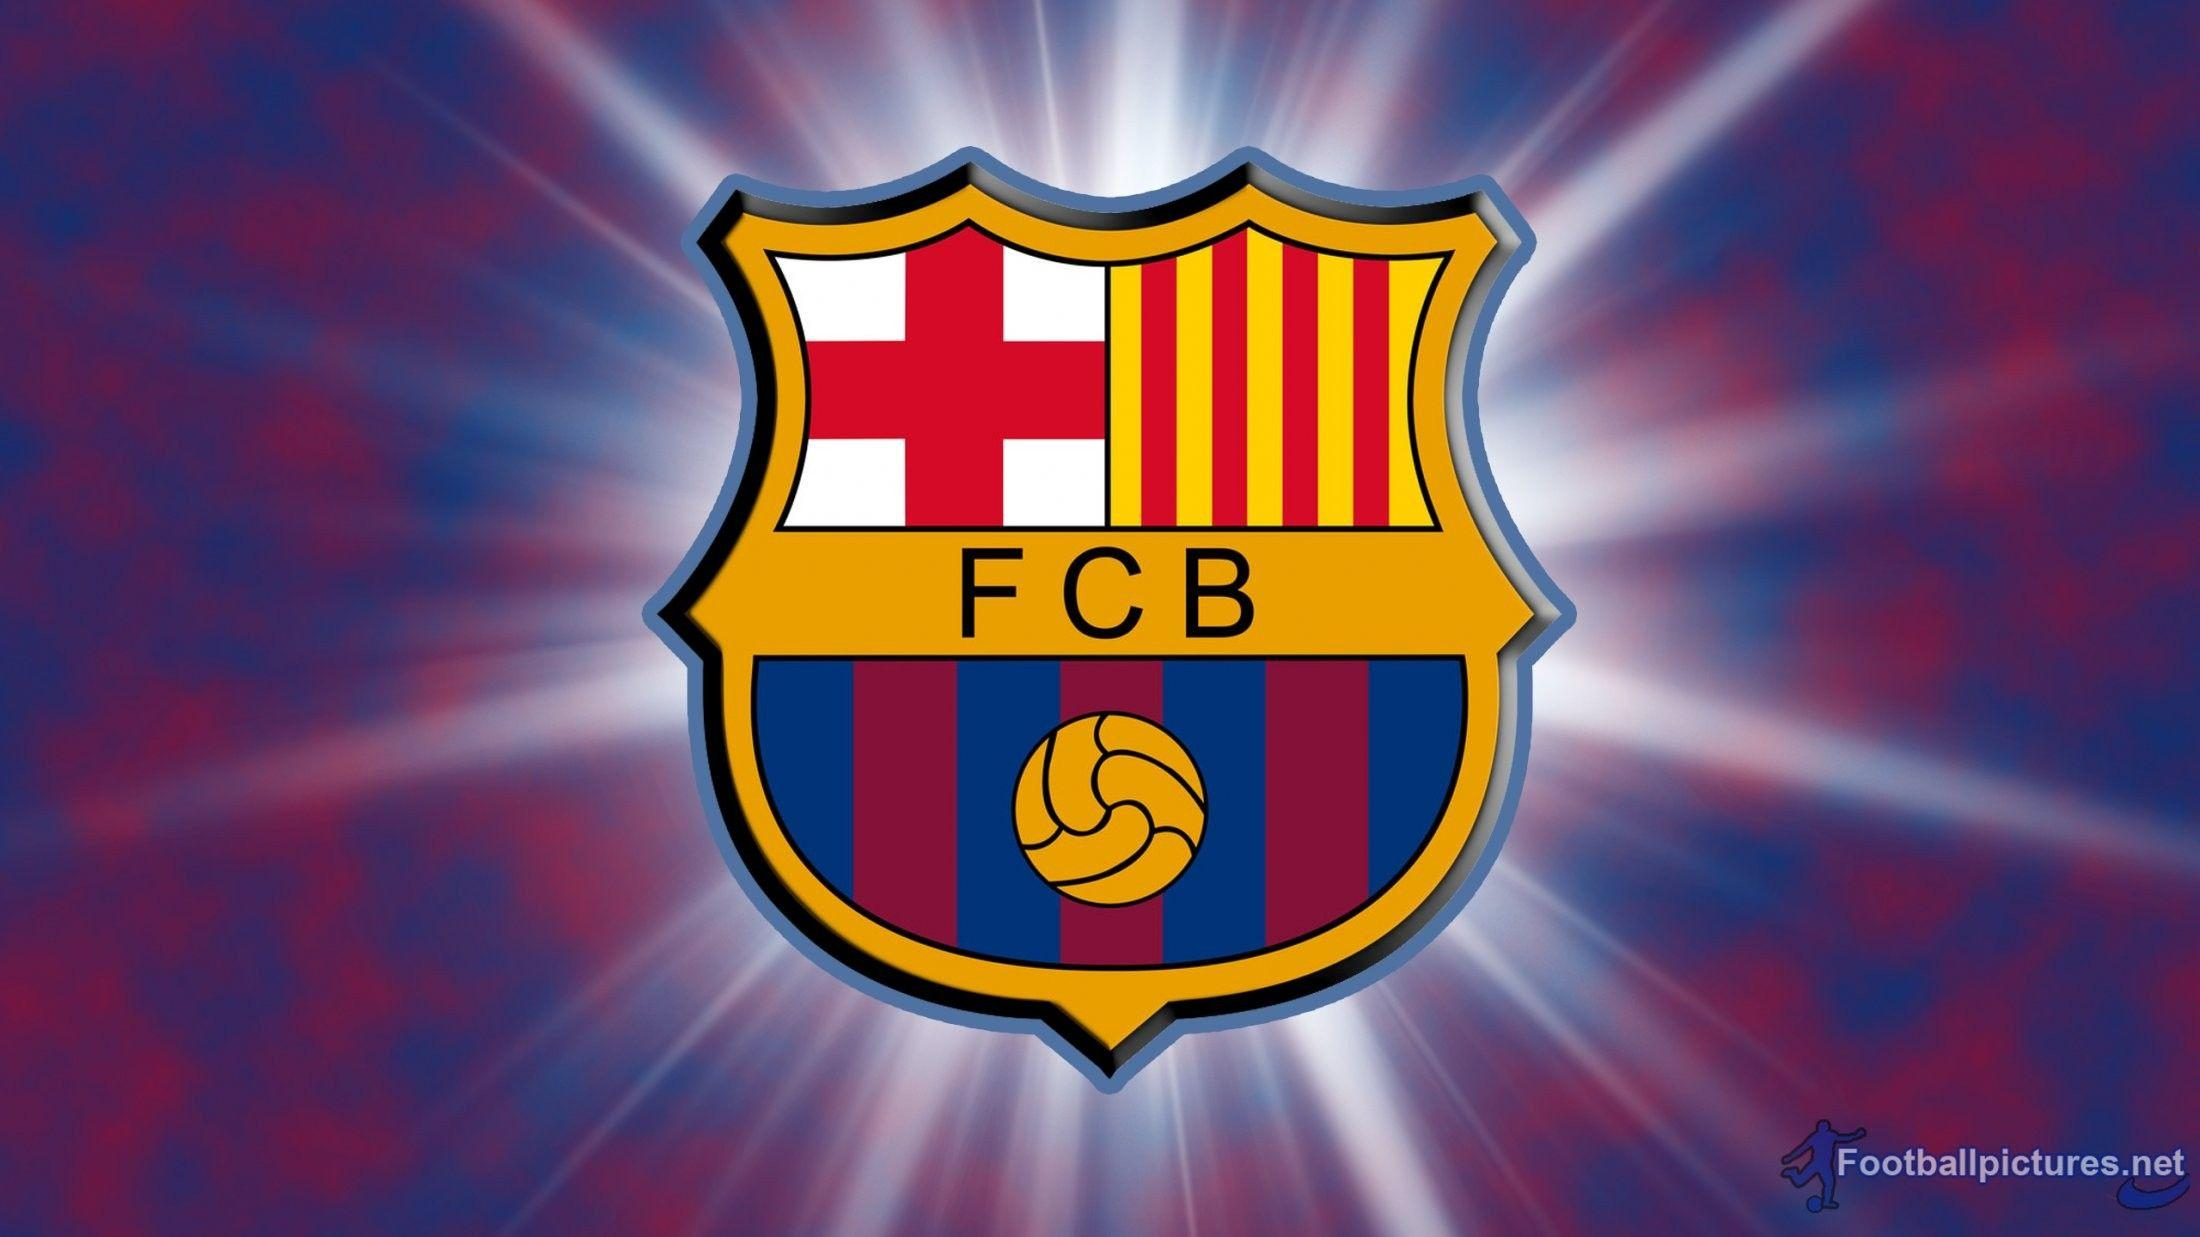 Fc Barcelona Logo Wallpapers HD - Wallpaper Cave